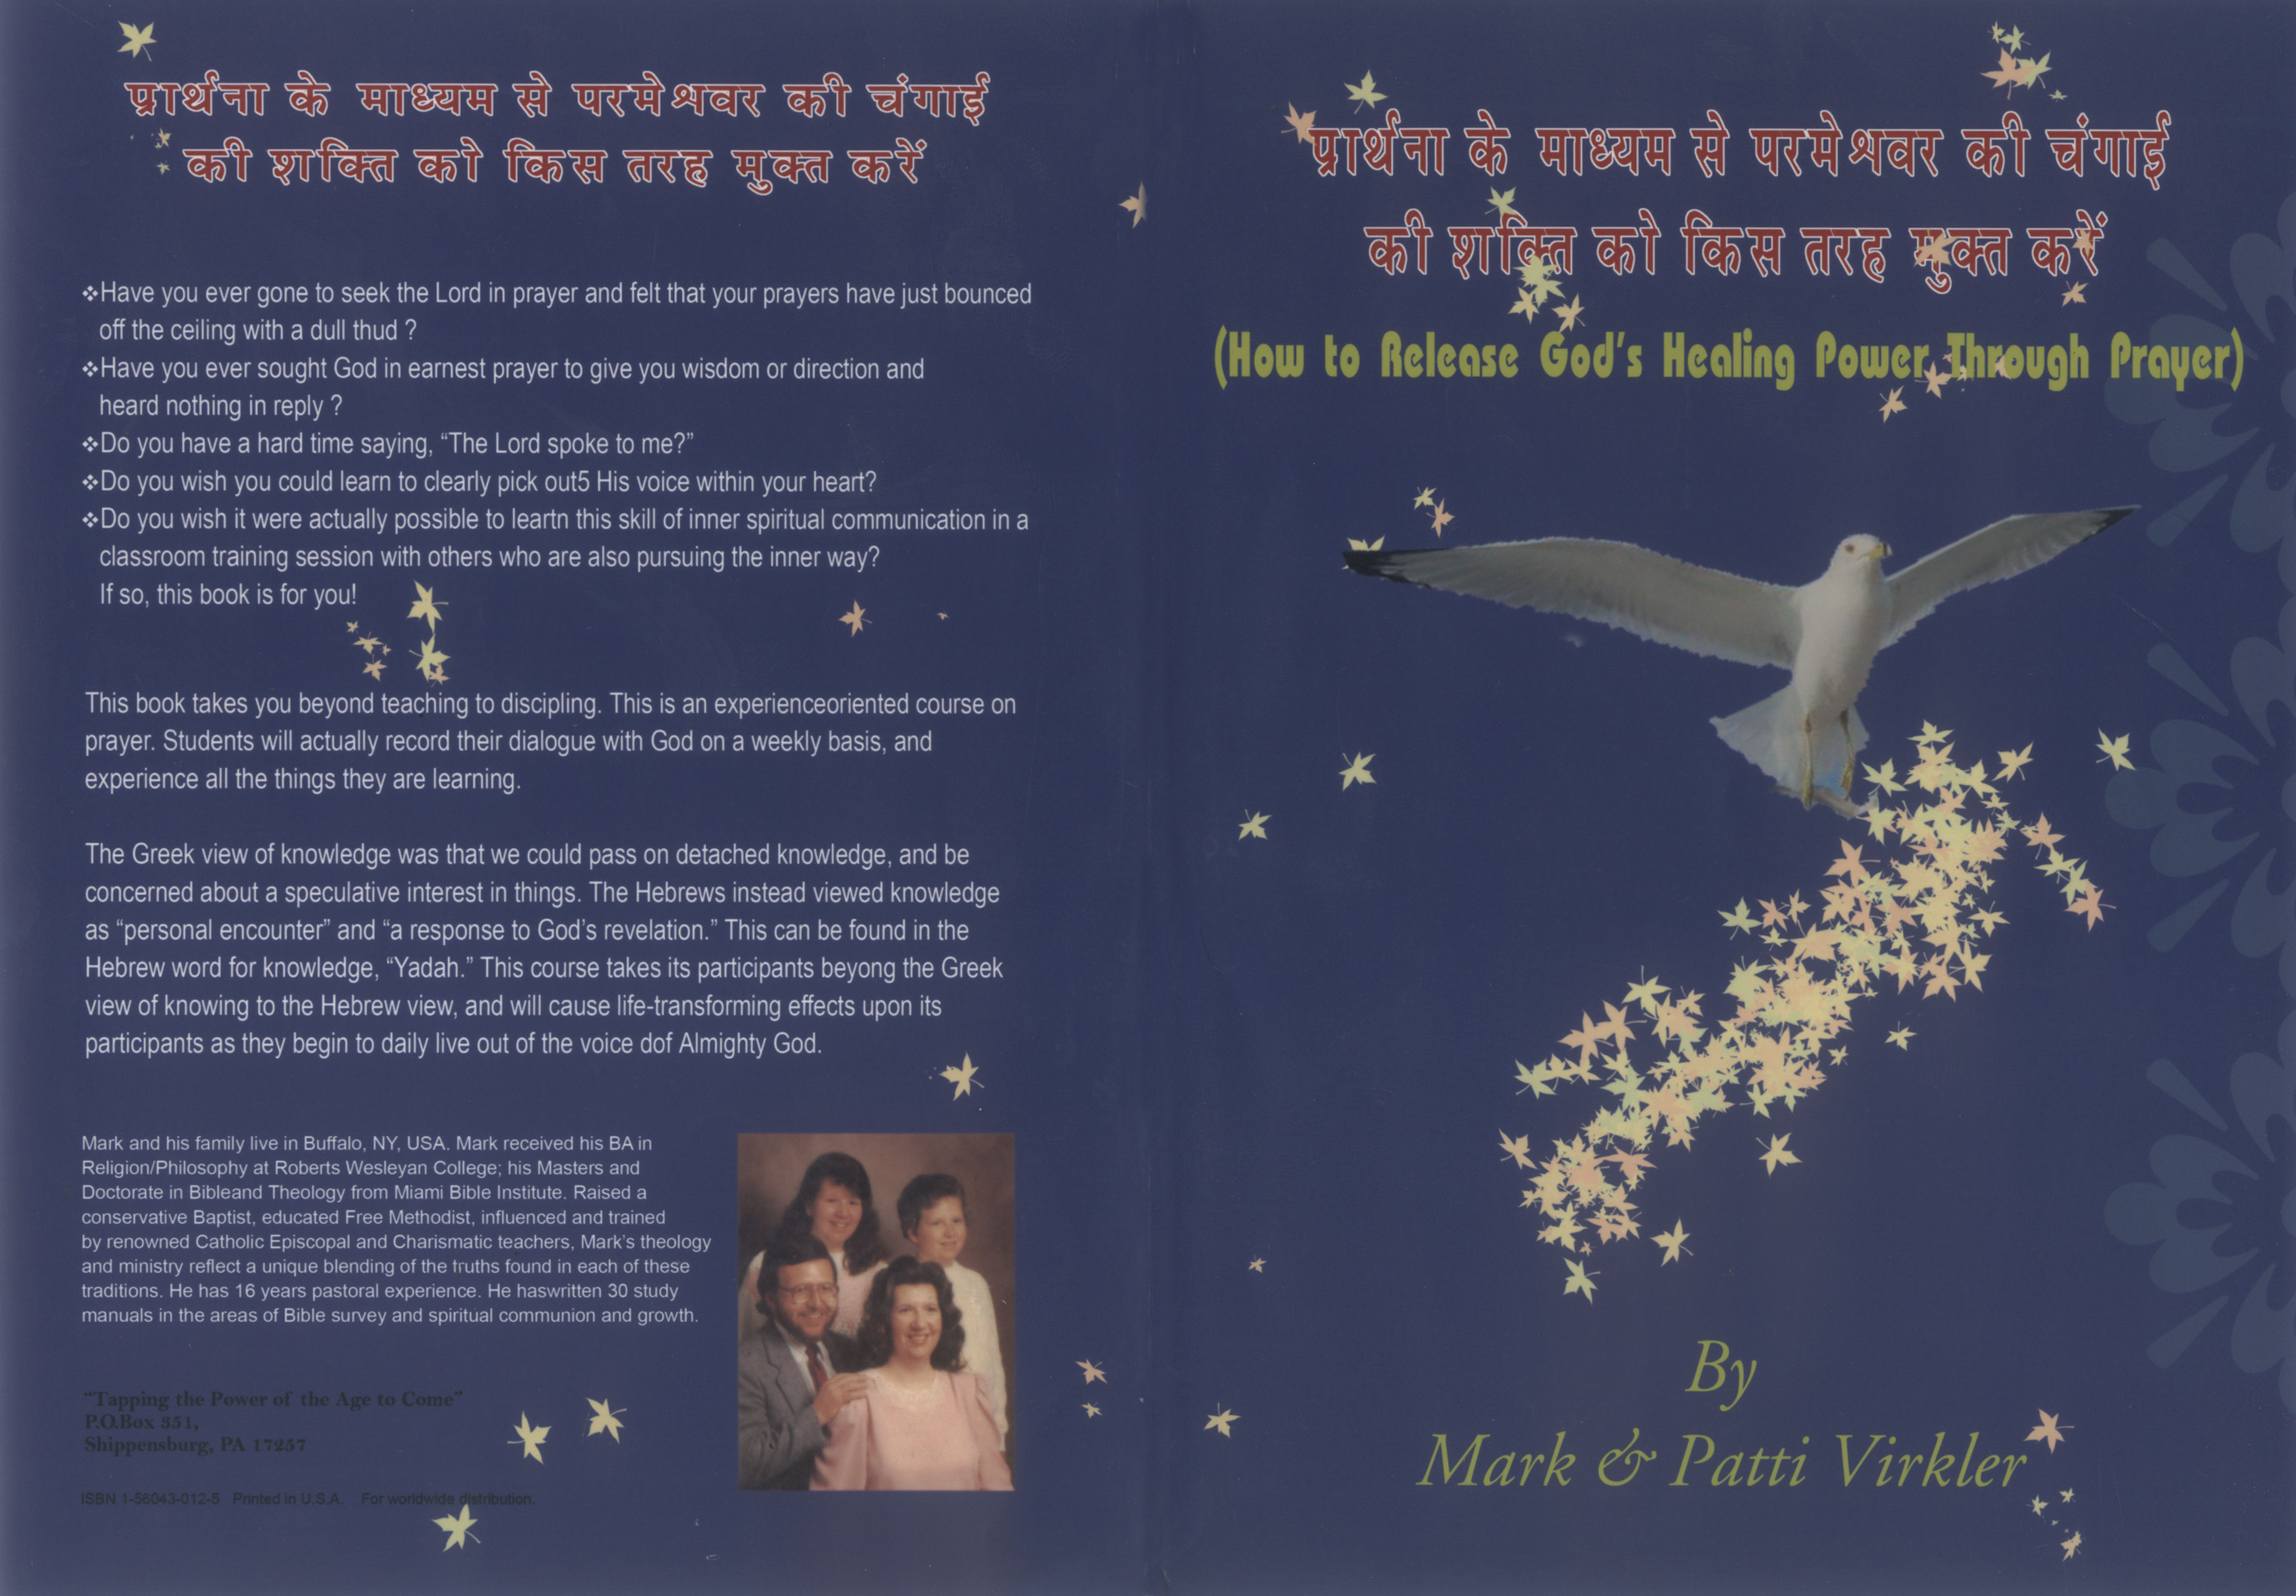 Front And Back Cover Graphic (13mb)